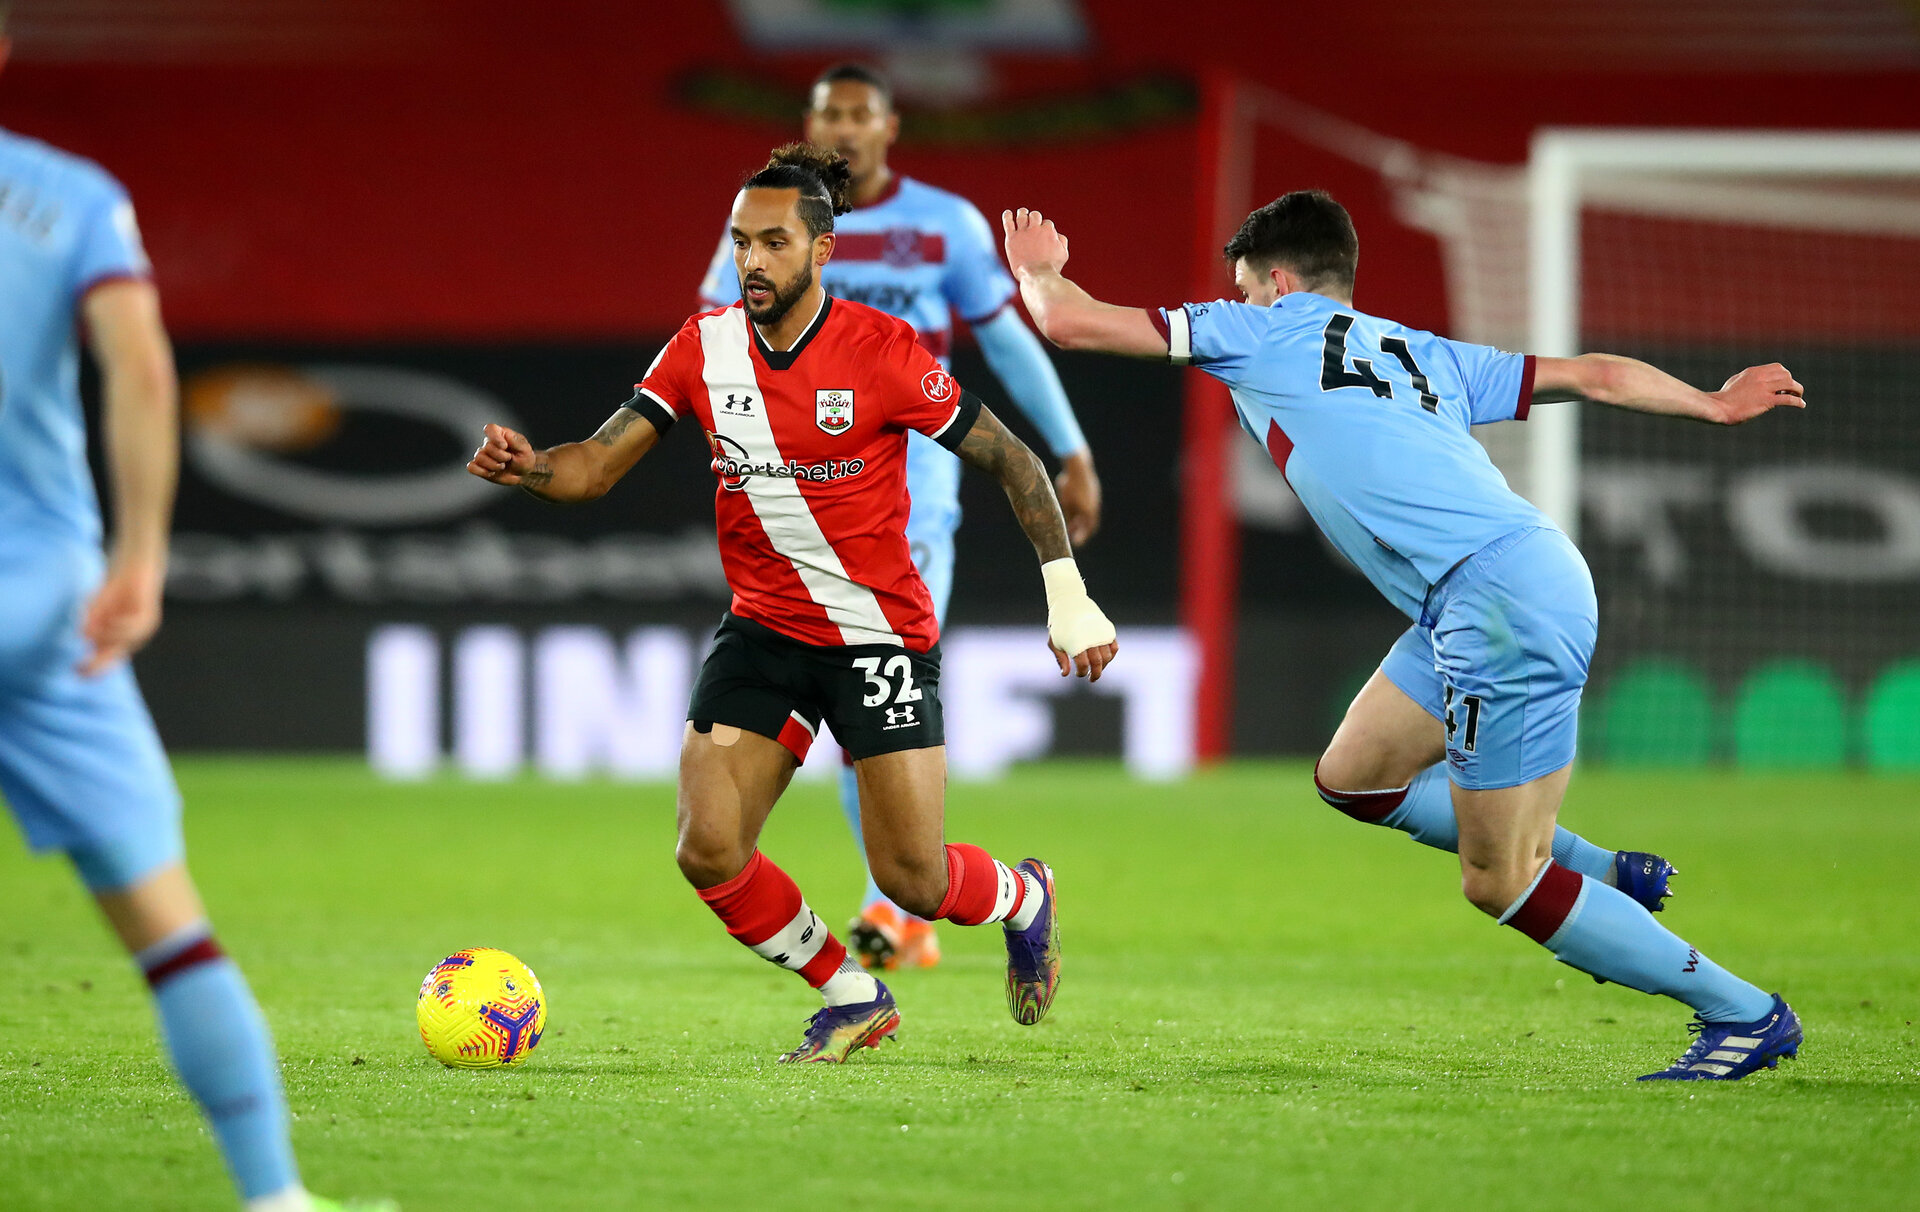 SOUTHAMPTON, ENGLAND - DECEMBER 29: Theo Walcott of Southampton during the Premier League match between Southampton and West Ham United at St Mary's Stadium on December 29, 2020 in Southampton, England. (Photo by Matt Watson/Southampton FC via Getty Images)